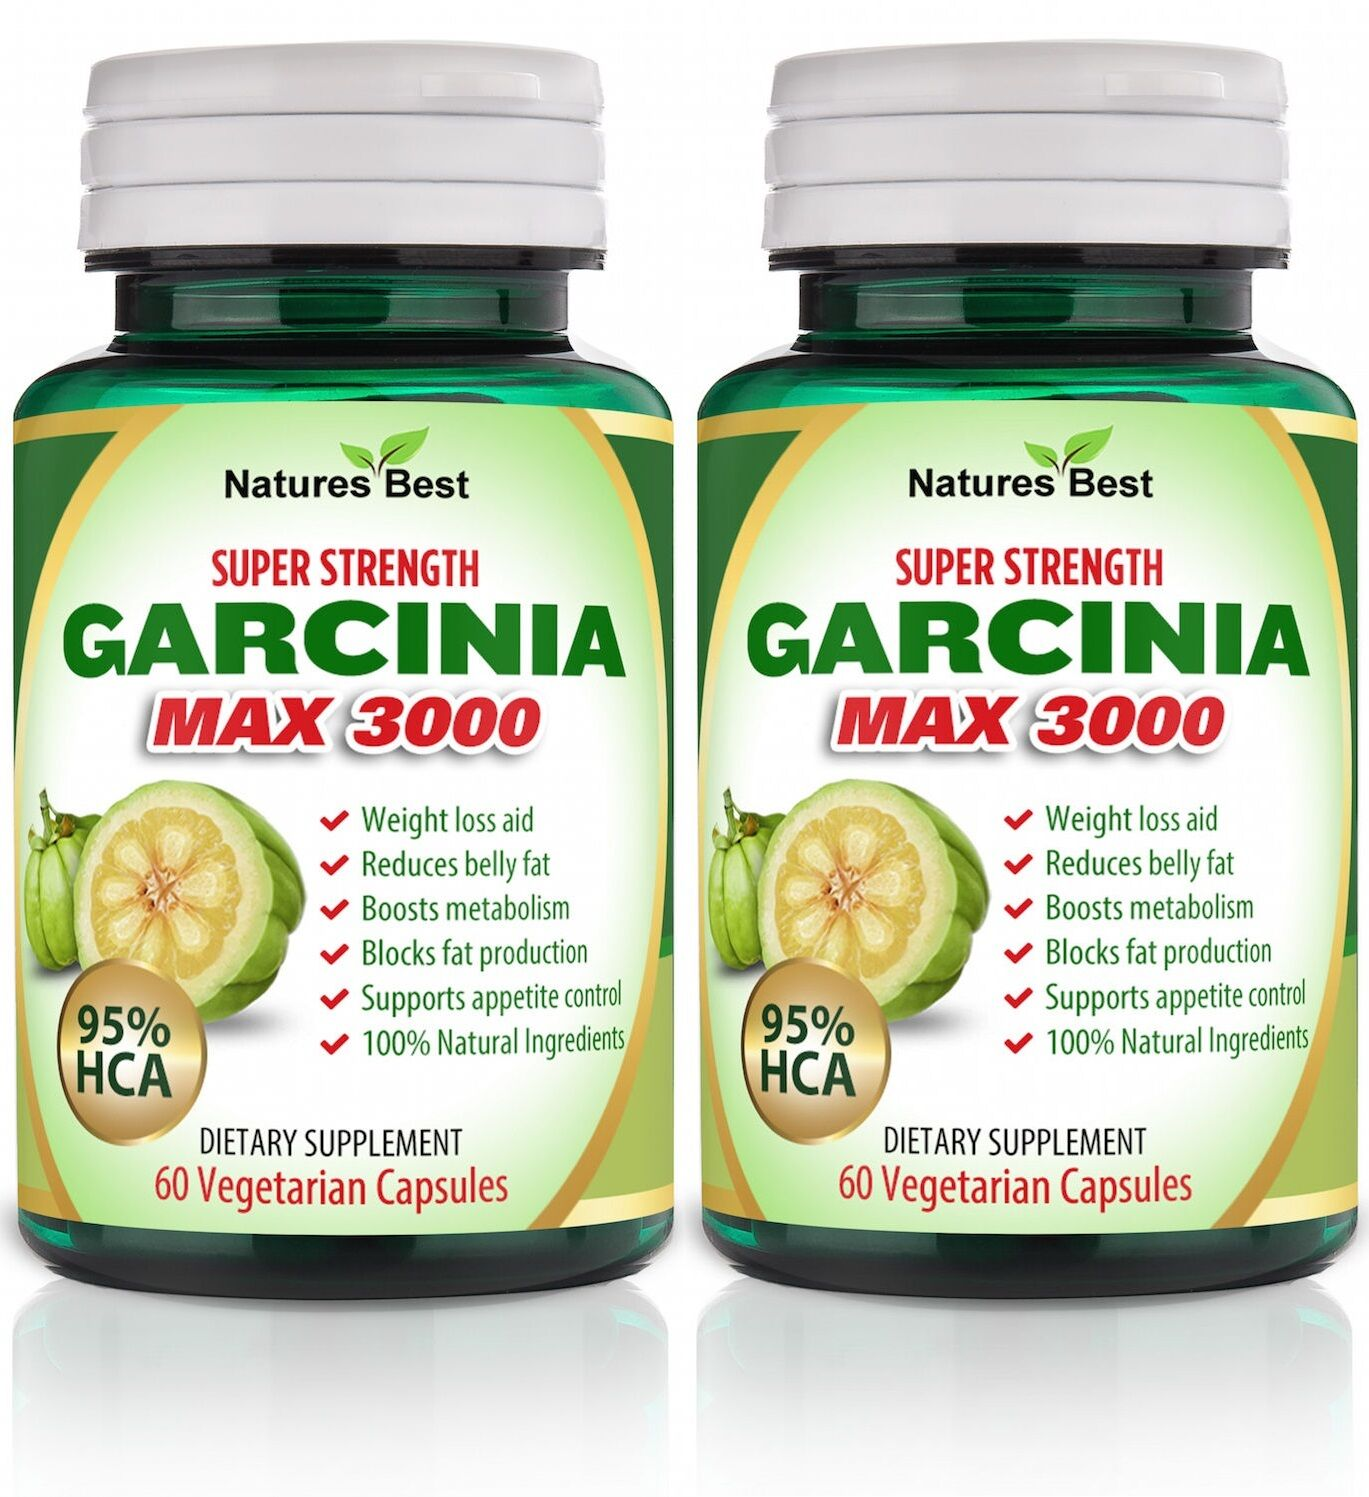 95 Hca Garcinia Cambogia Pure 3000mg Daily Weight Loss Diet 1 Of 2only 4 Available